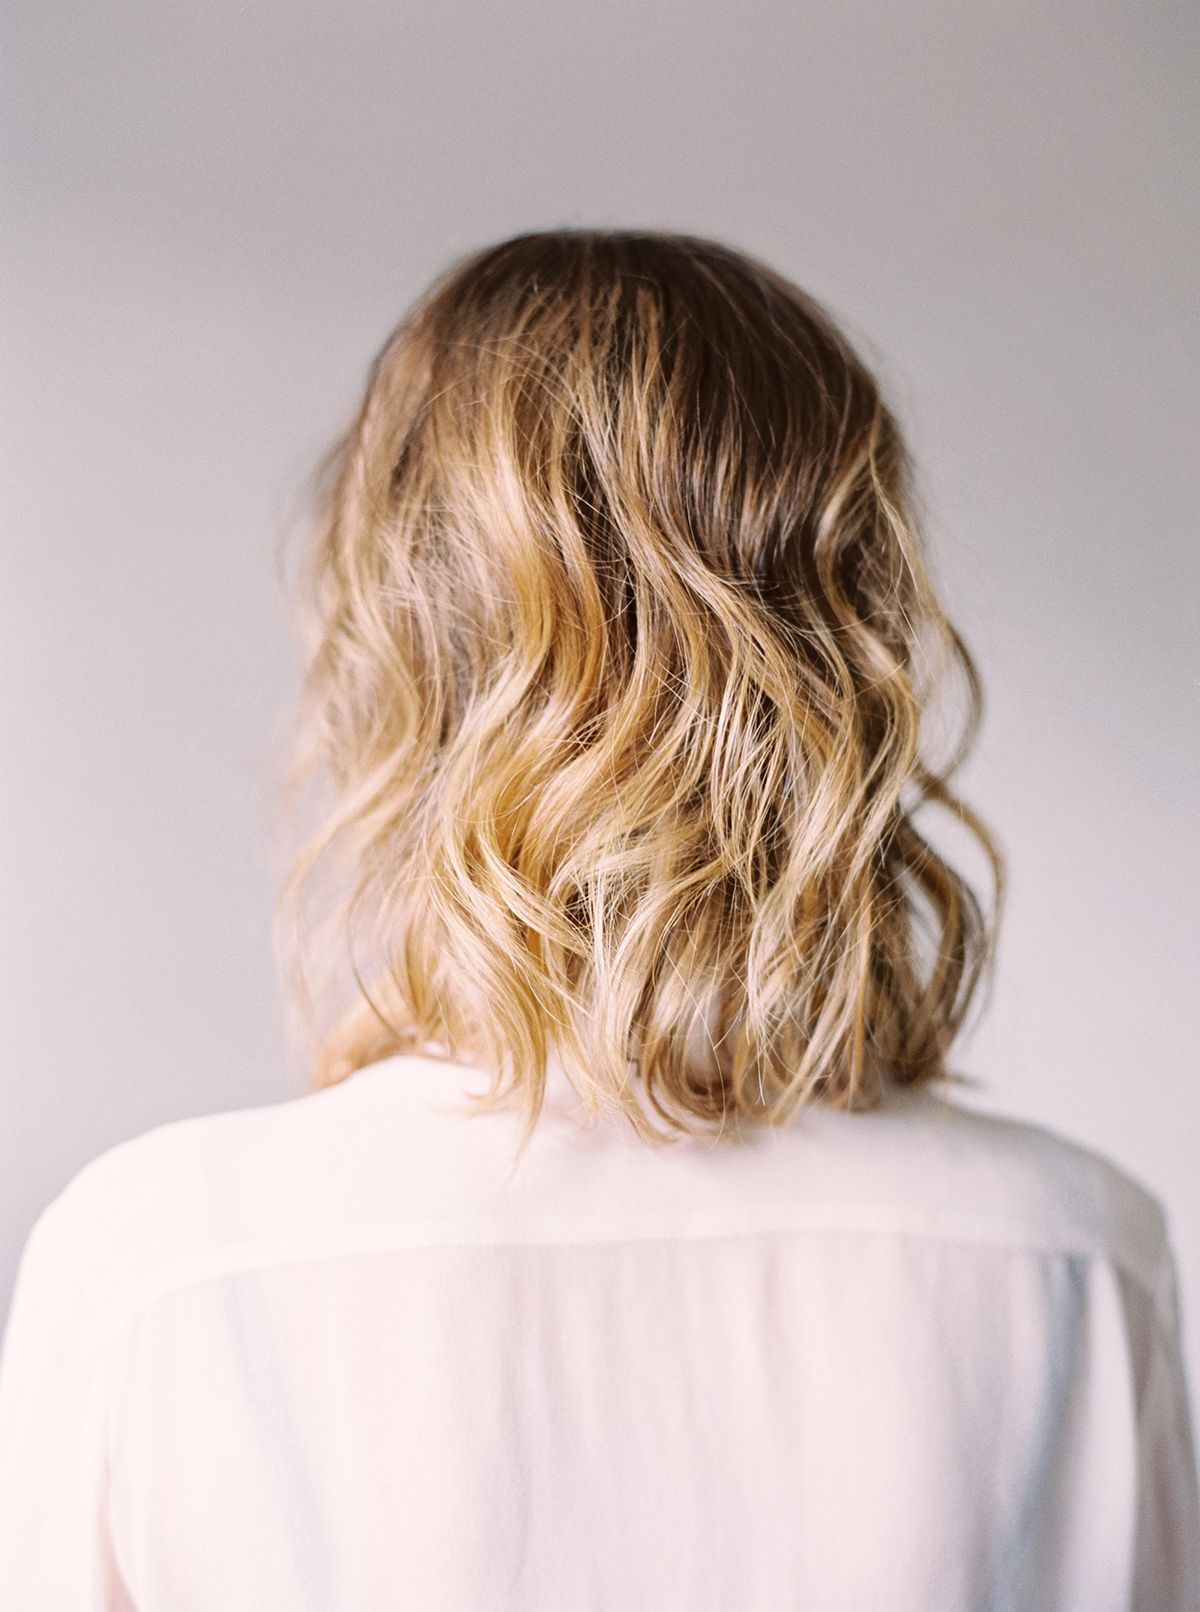 Three ways to style a long bob long bob lob and beach waves